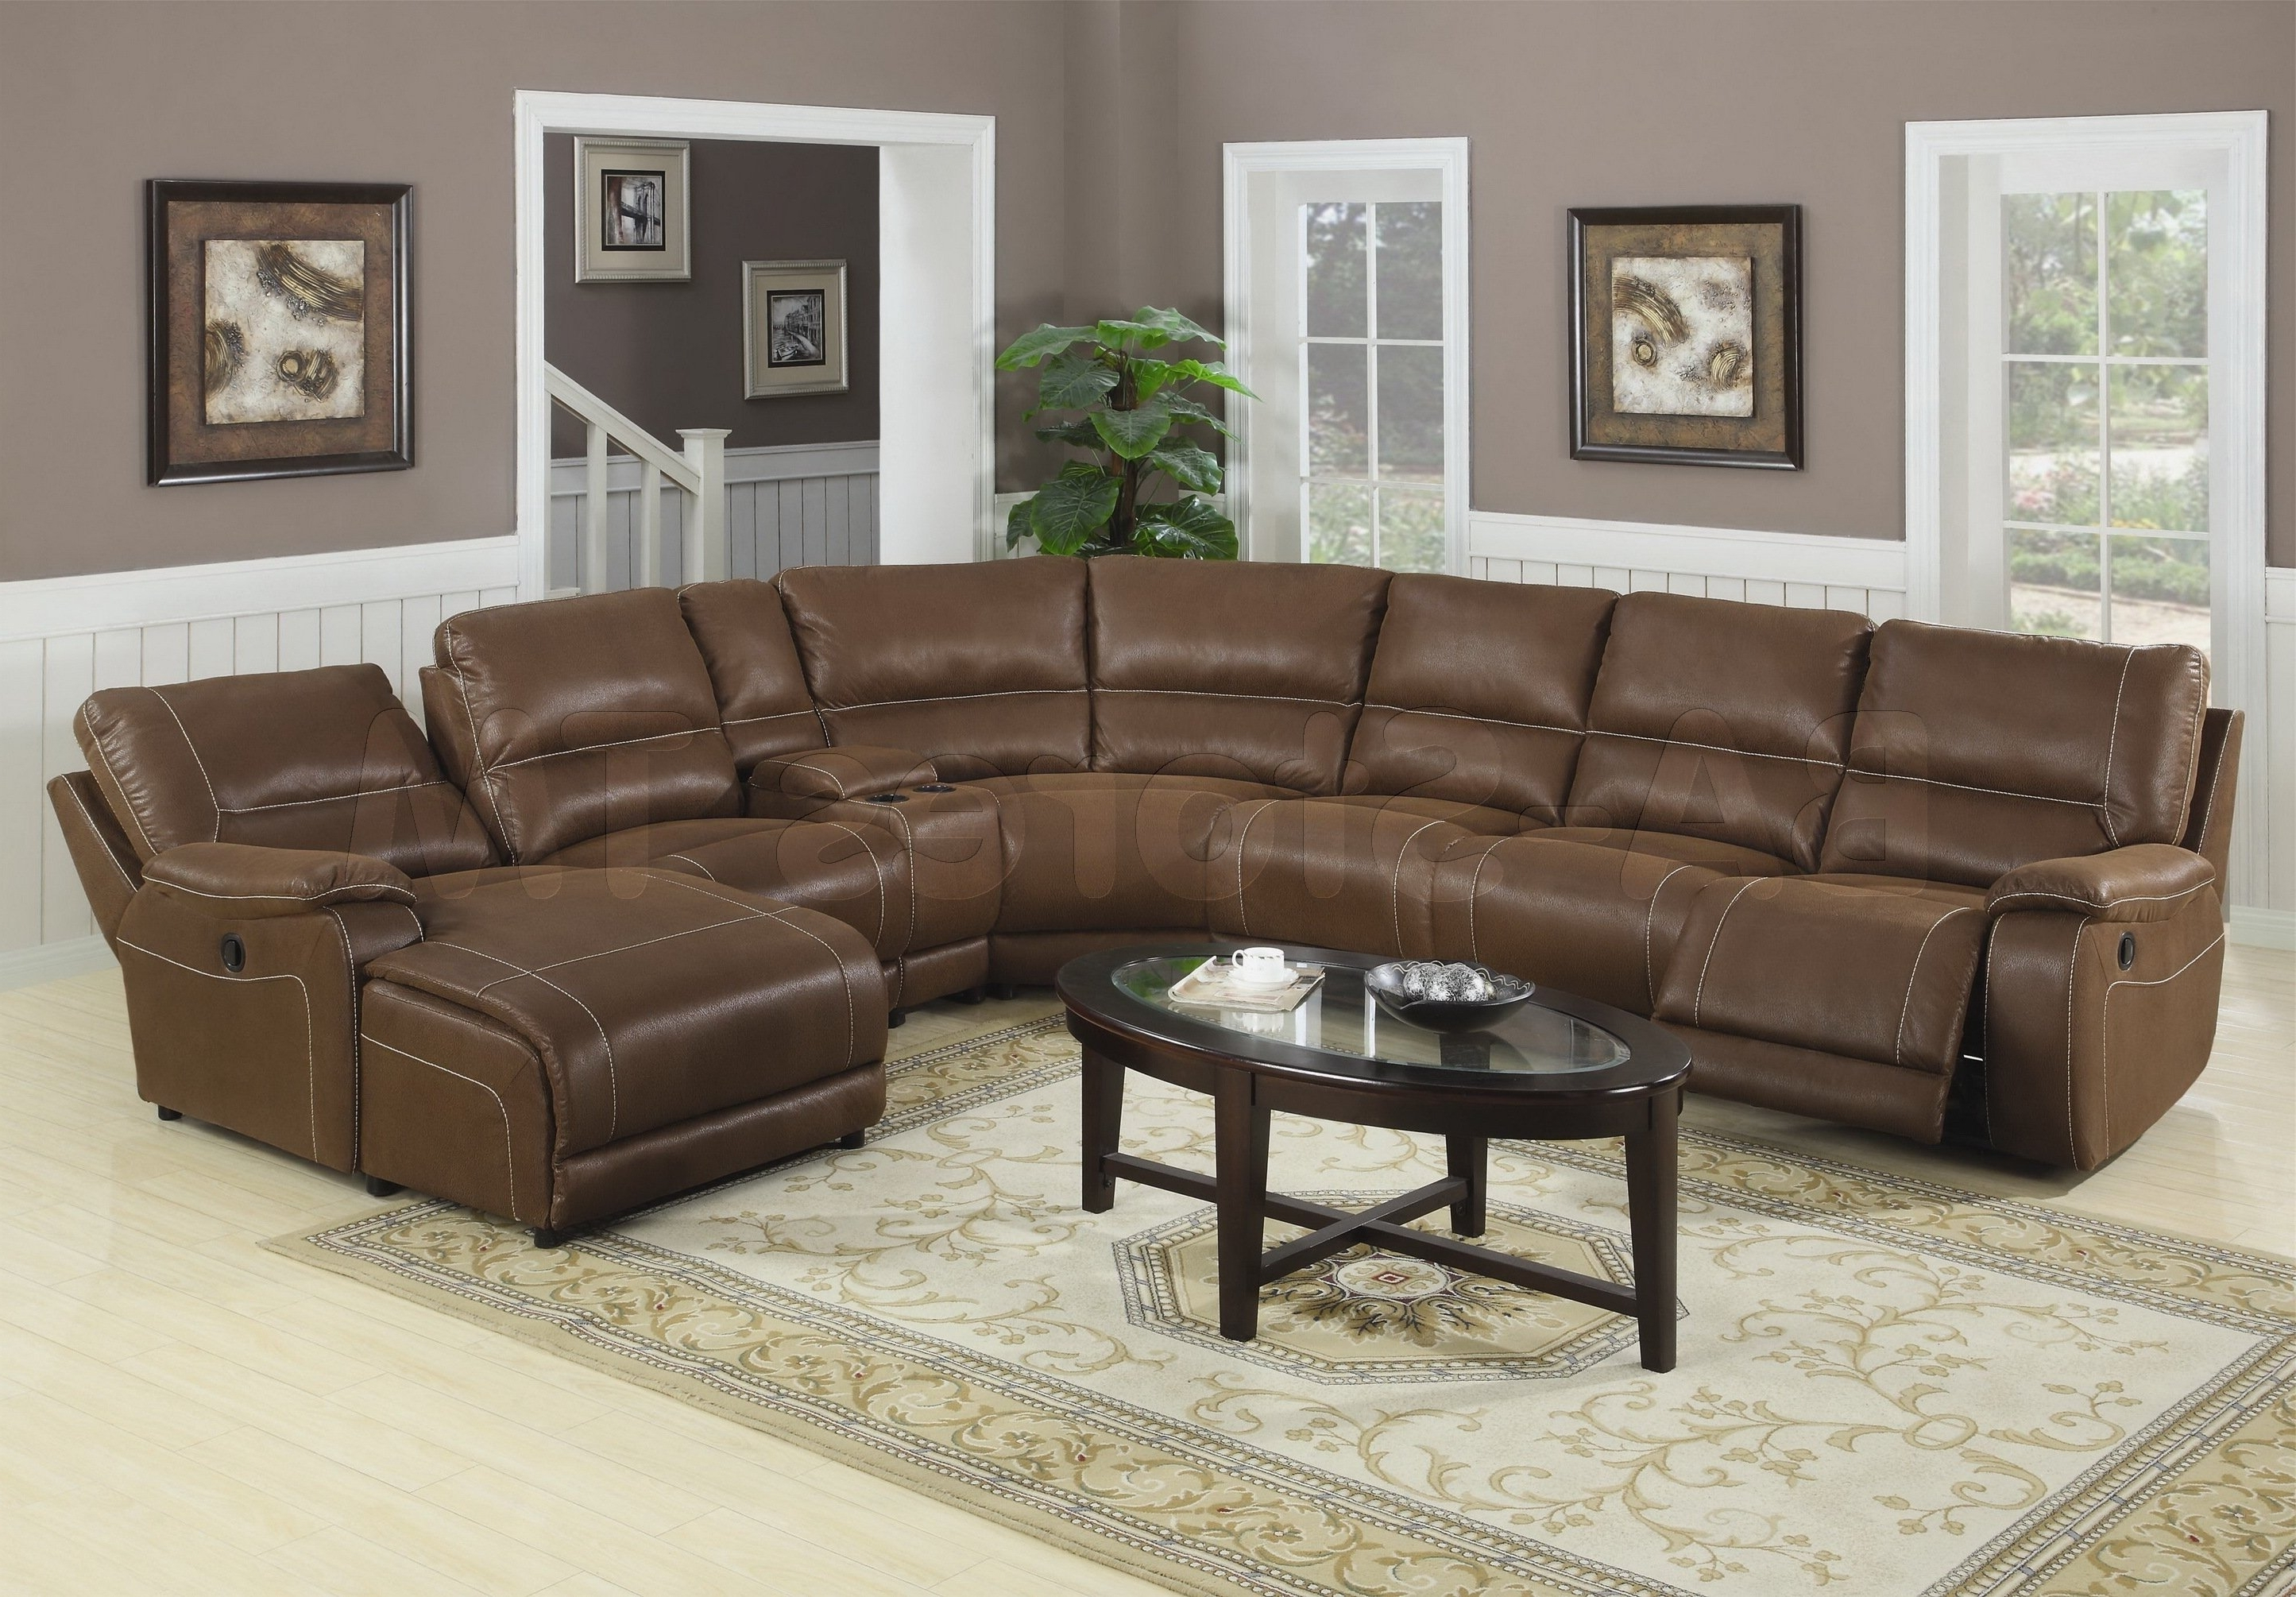 Most Recently Released Interior Luxury Oversized Sectional Sofa For Awesome Living Room Throughout Luxury Sectional Sofas (View 9 of 15)